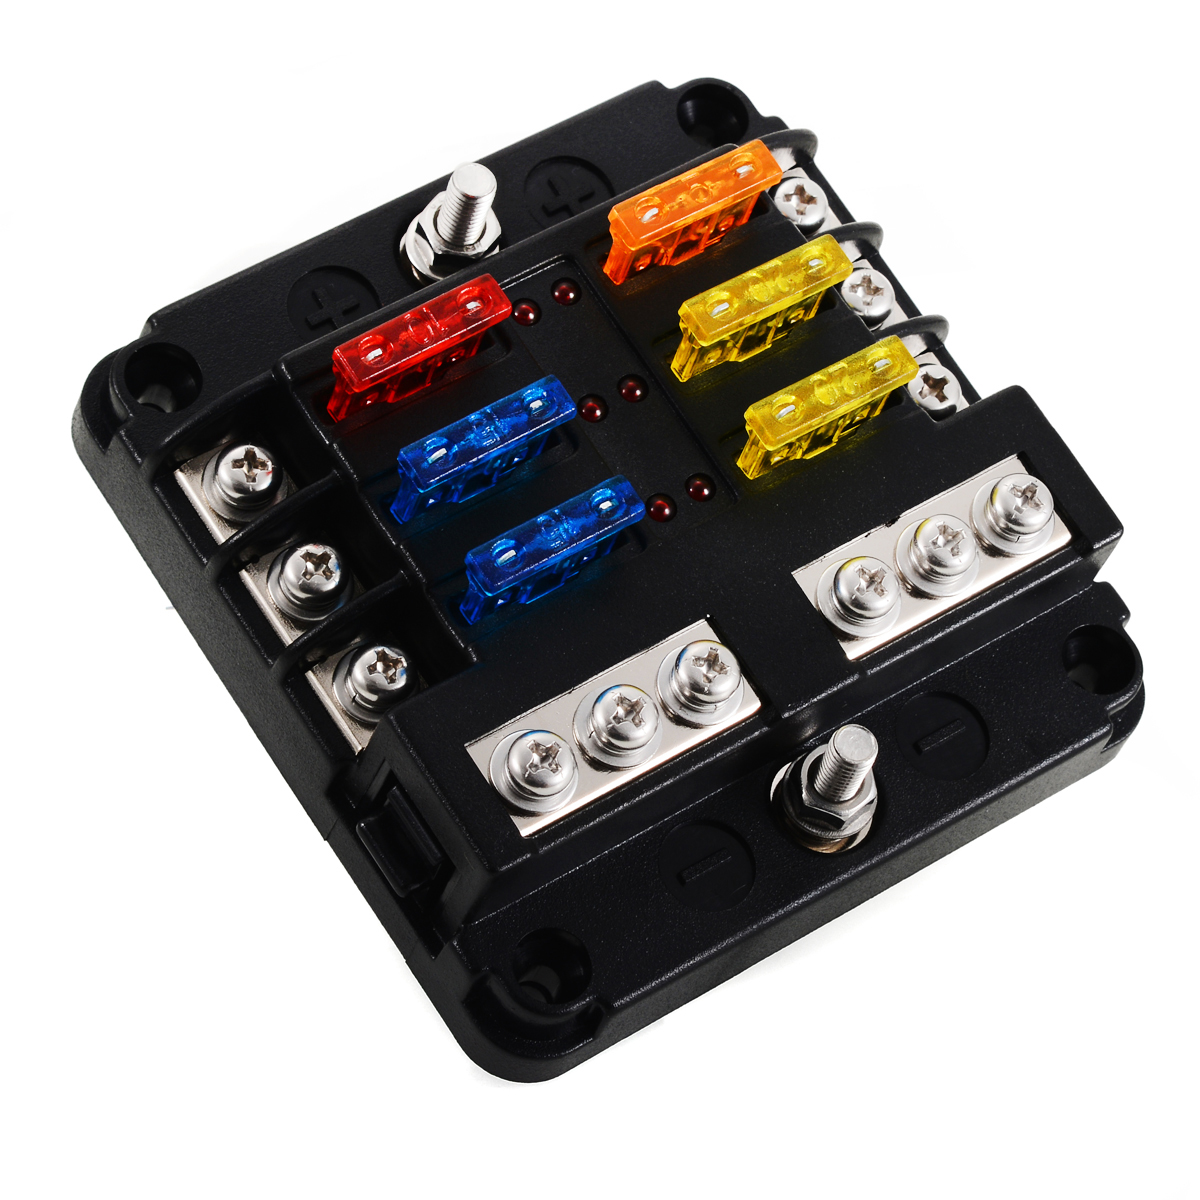 6 way blade fuse holder box block case 12v 24v car truck marine bus rv van mayitr for car boat marine caravan truck [ 1200 x 1200 Pixel ]